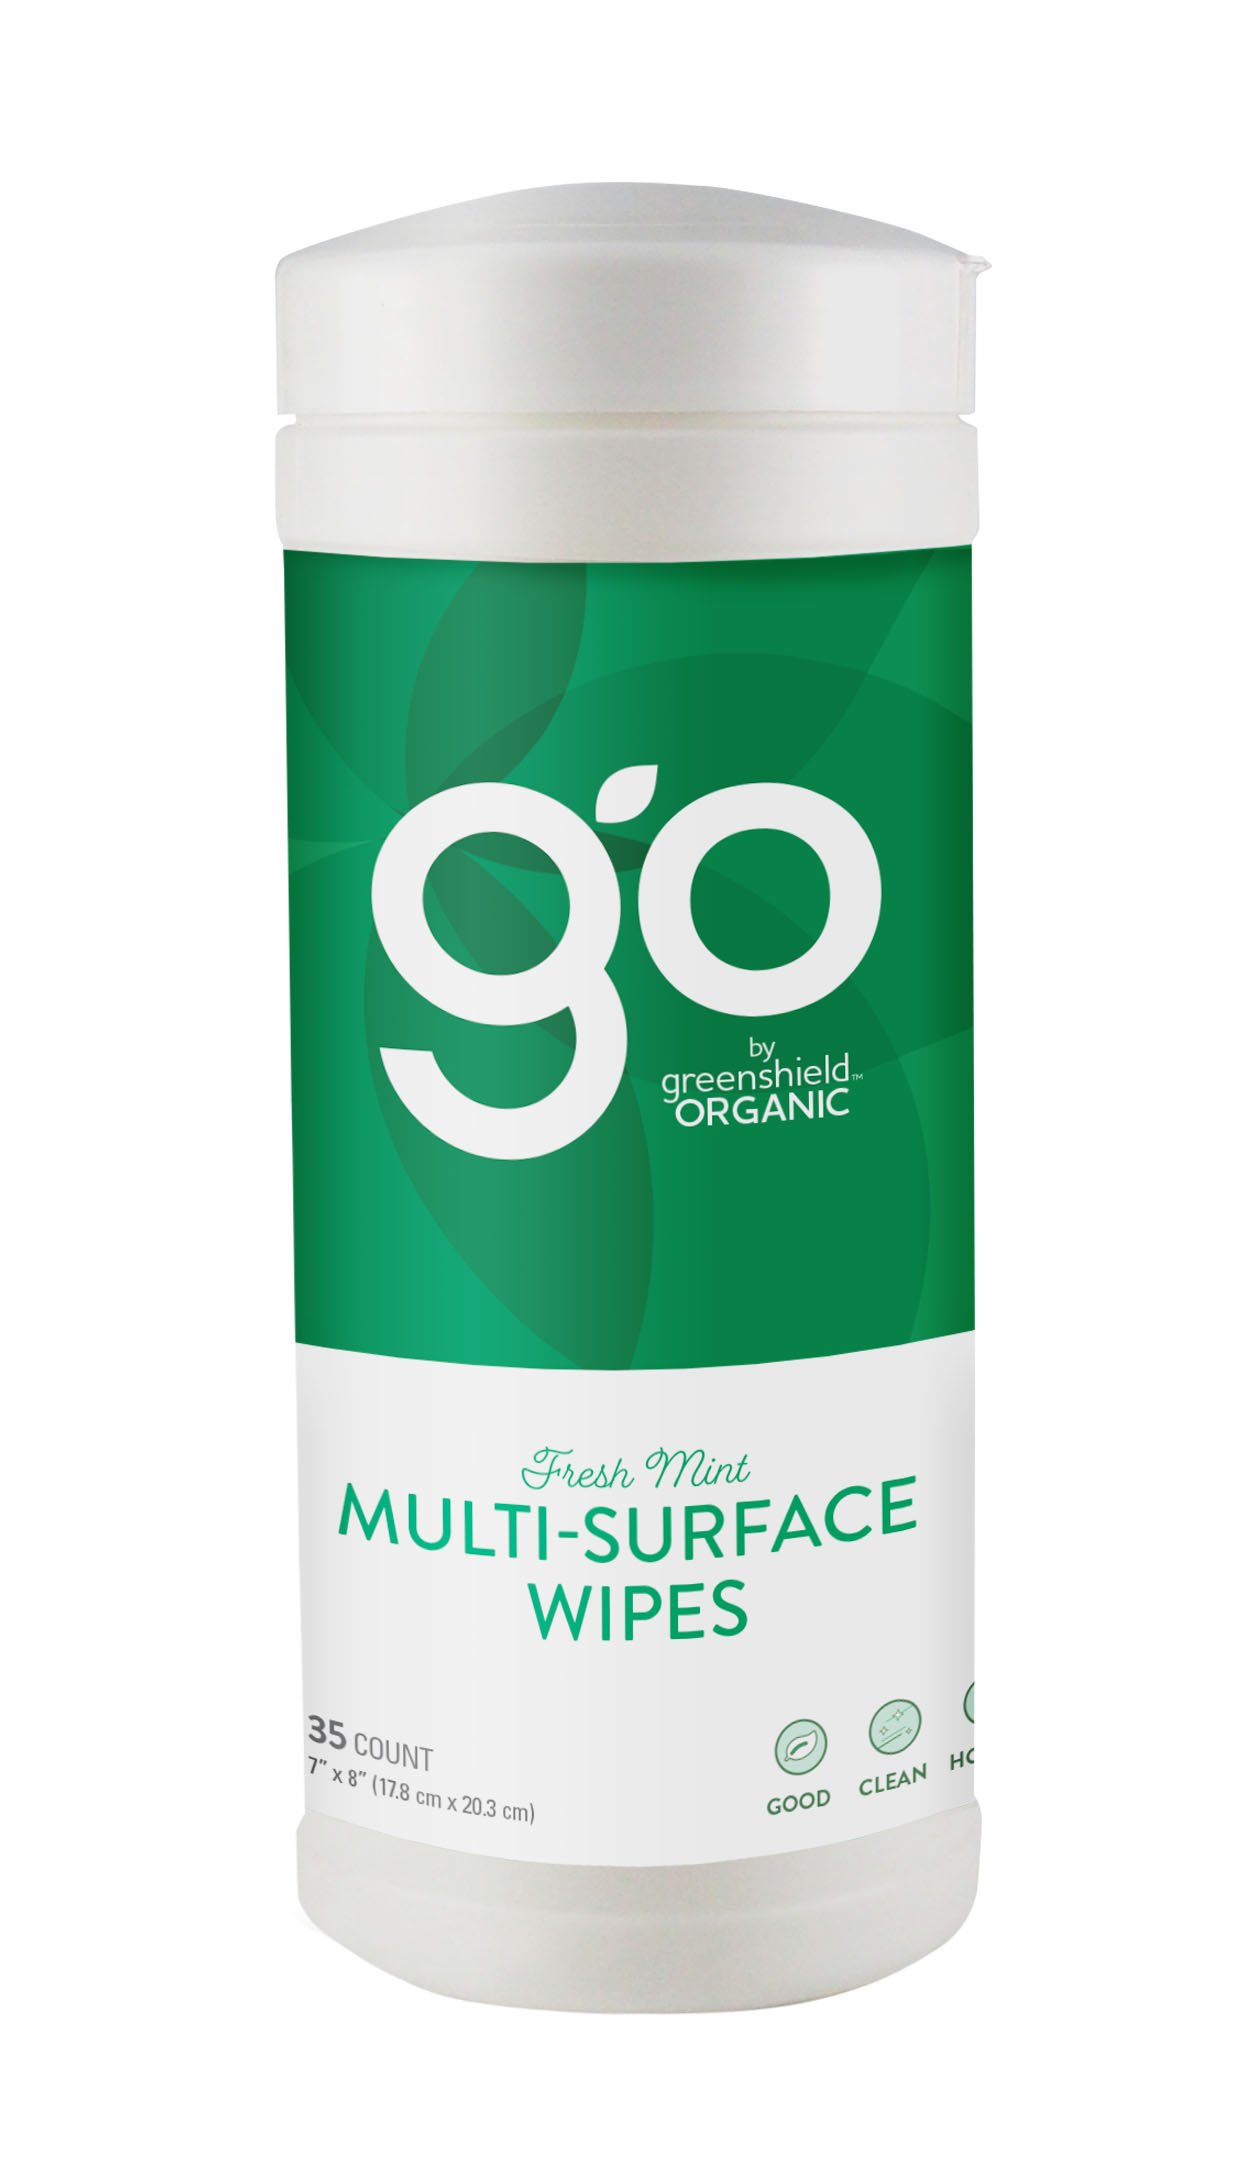 GO by GreenShield Organic 35 Count Multi-Surface Wipes -Fresh Mint (6 Pack)